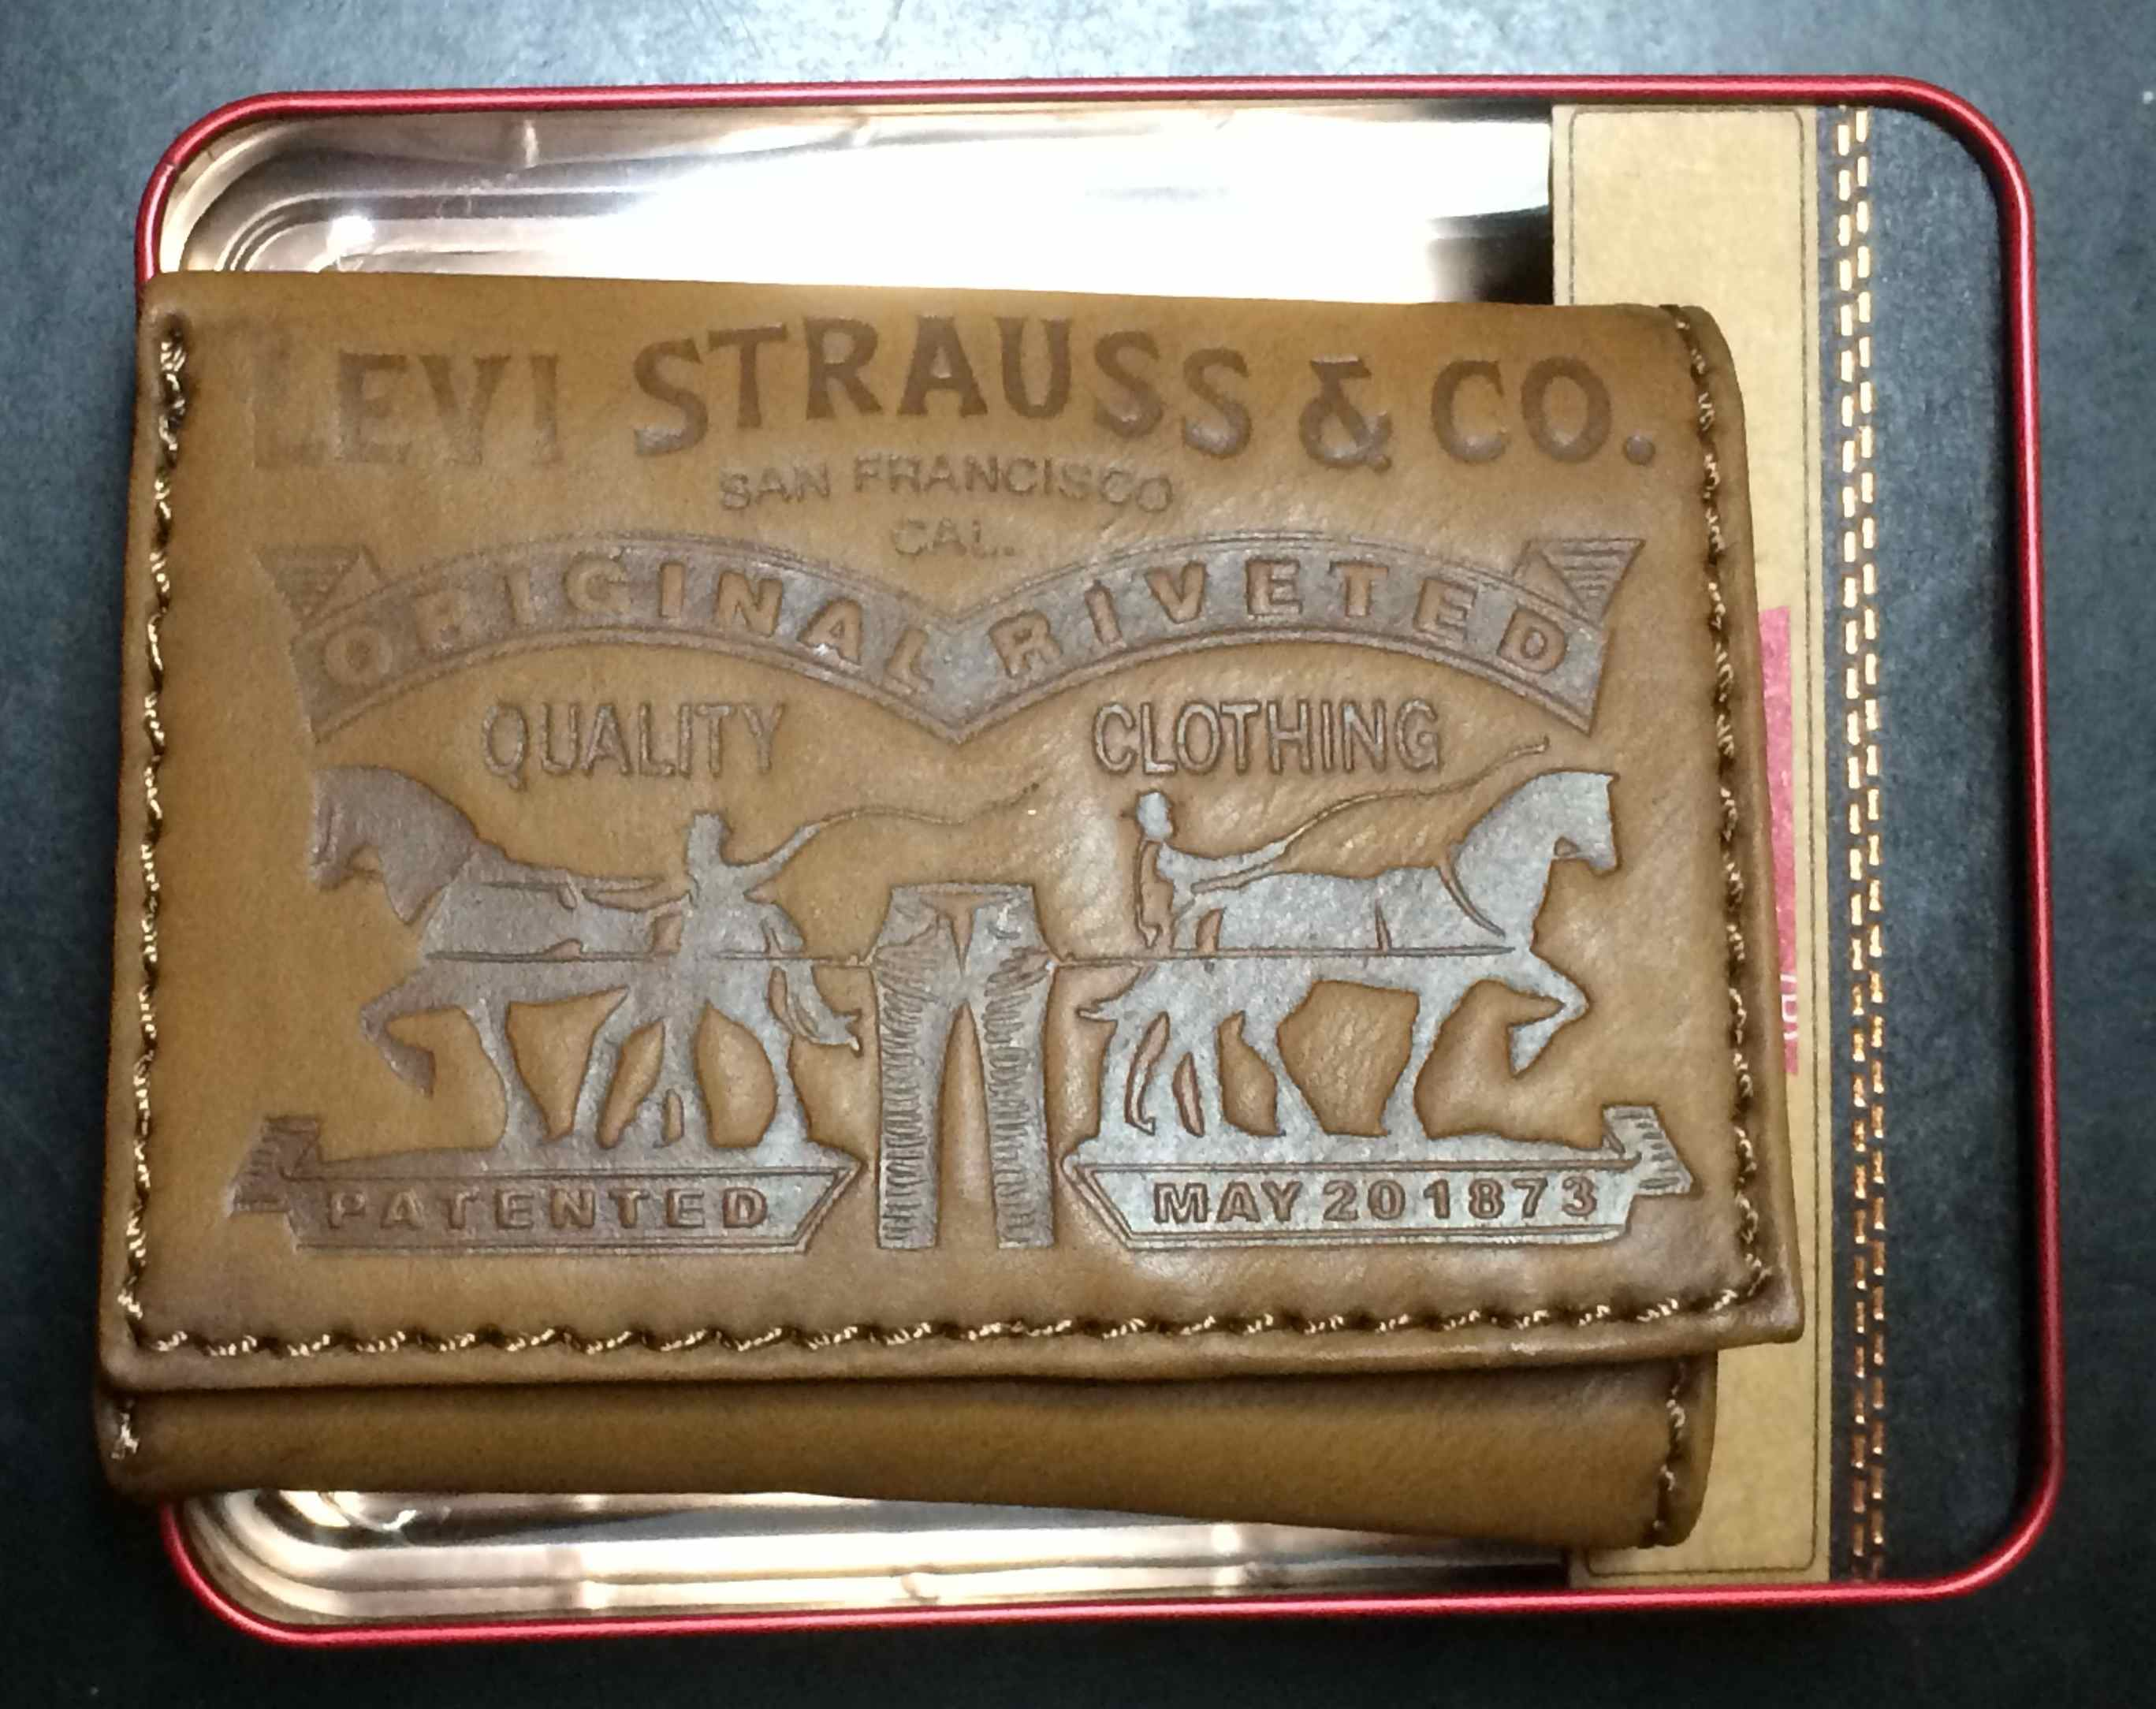 Levi's Two Horse Logo Trifold Wallet - Tan (31LV1179)